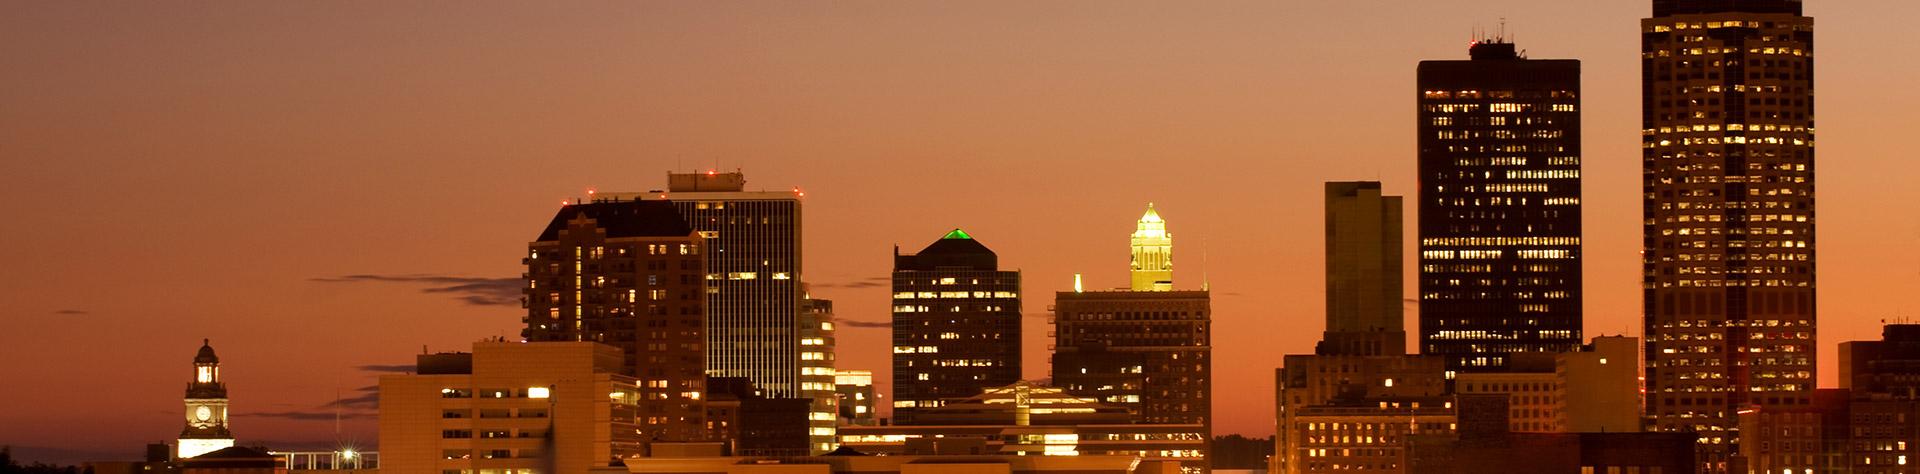 Downton Des Moines skyline